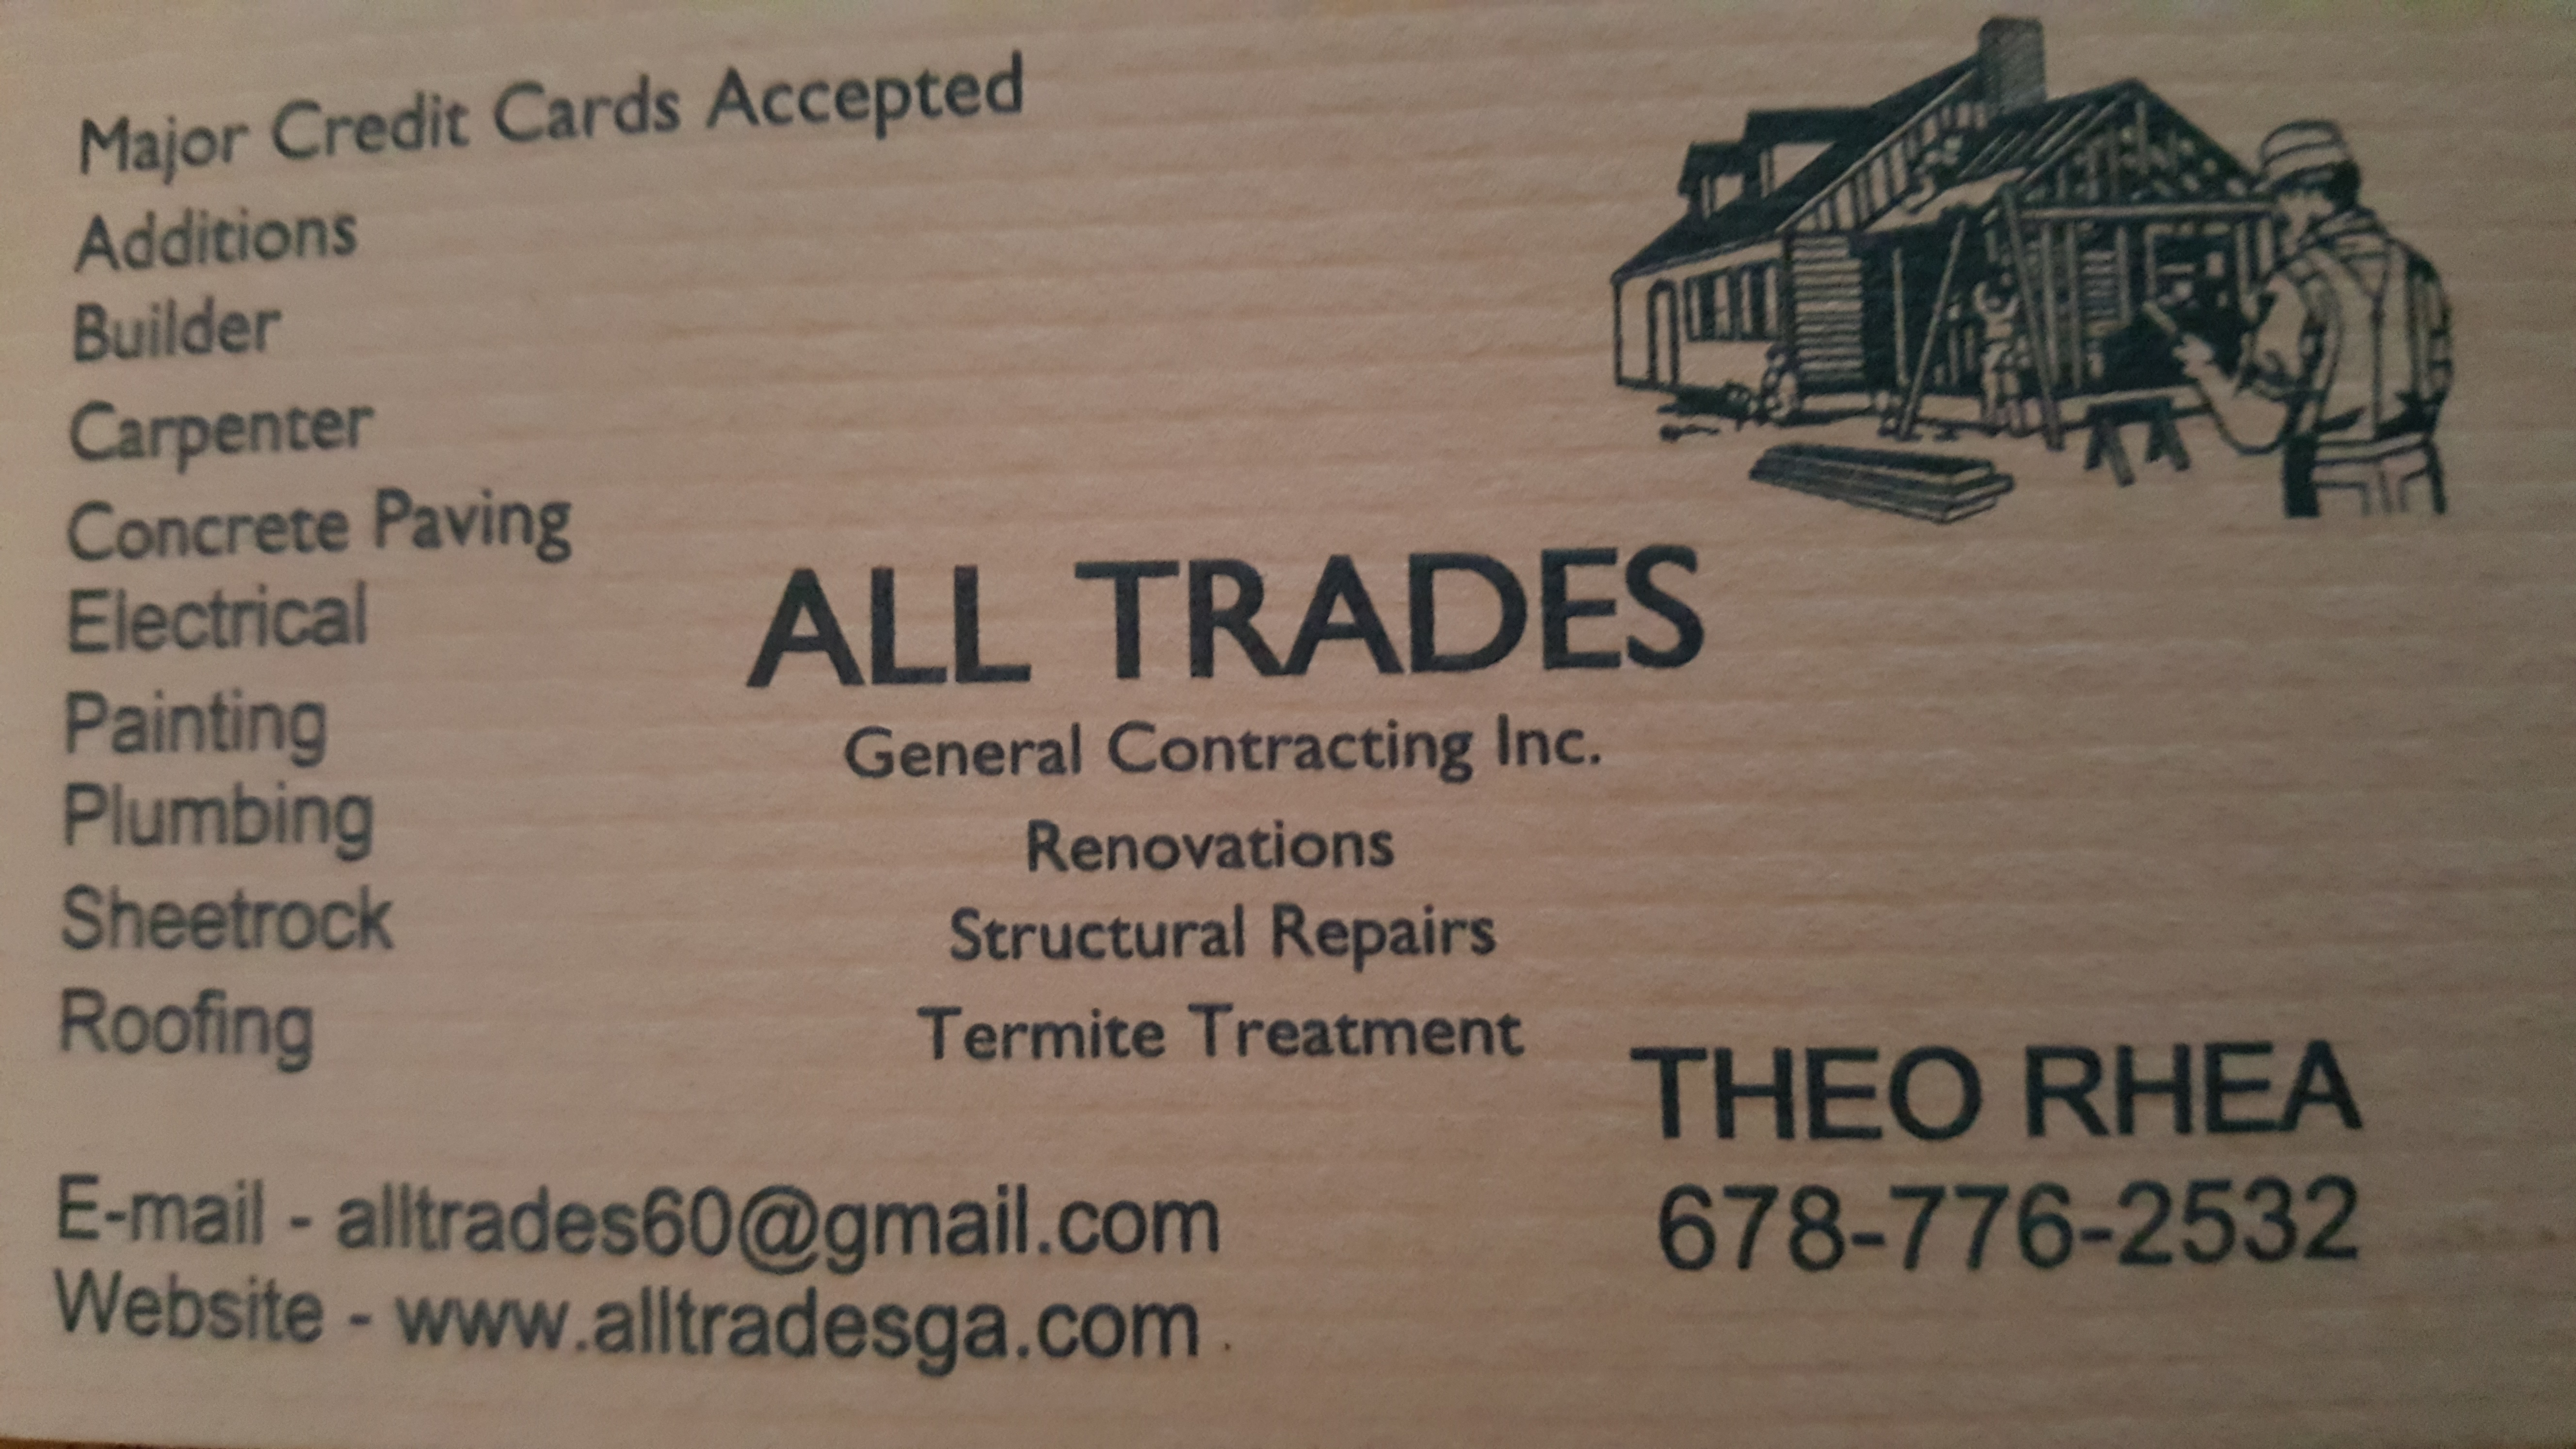 Contact All Trades General Contracting Inc